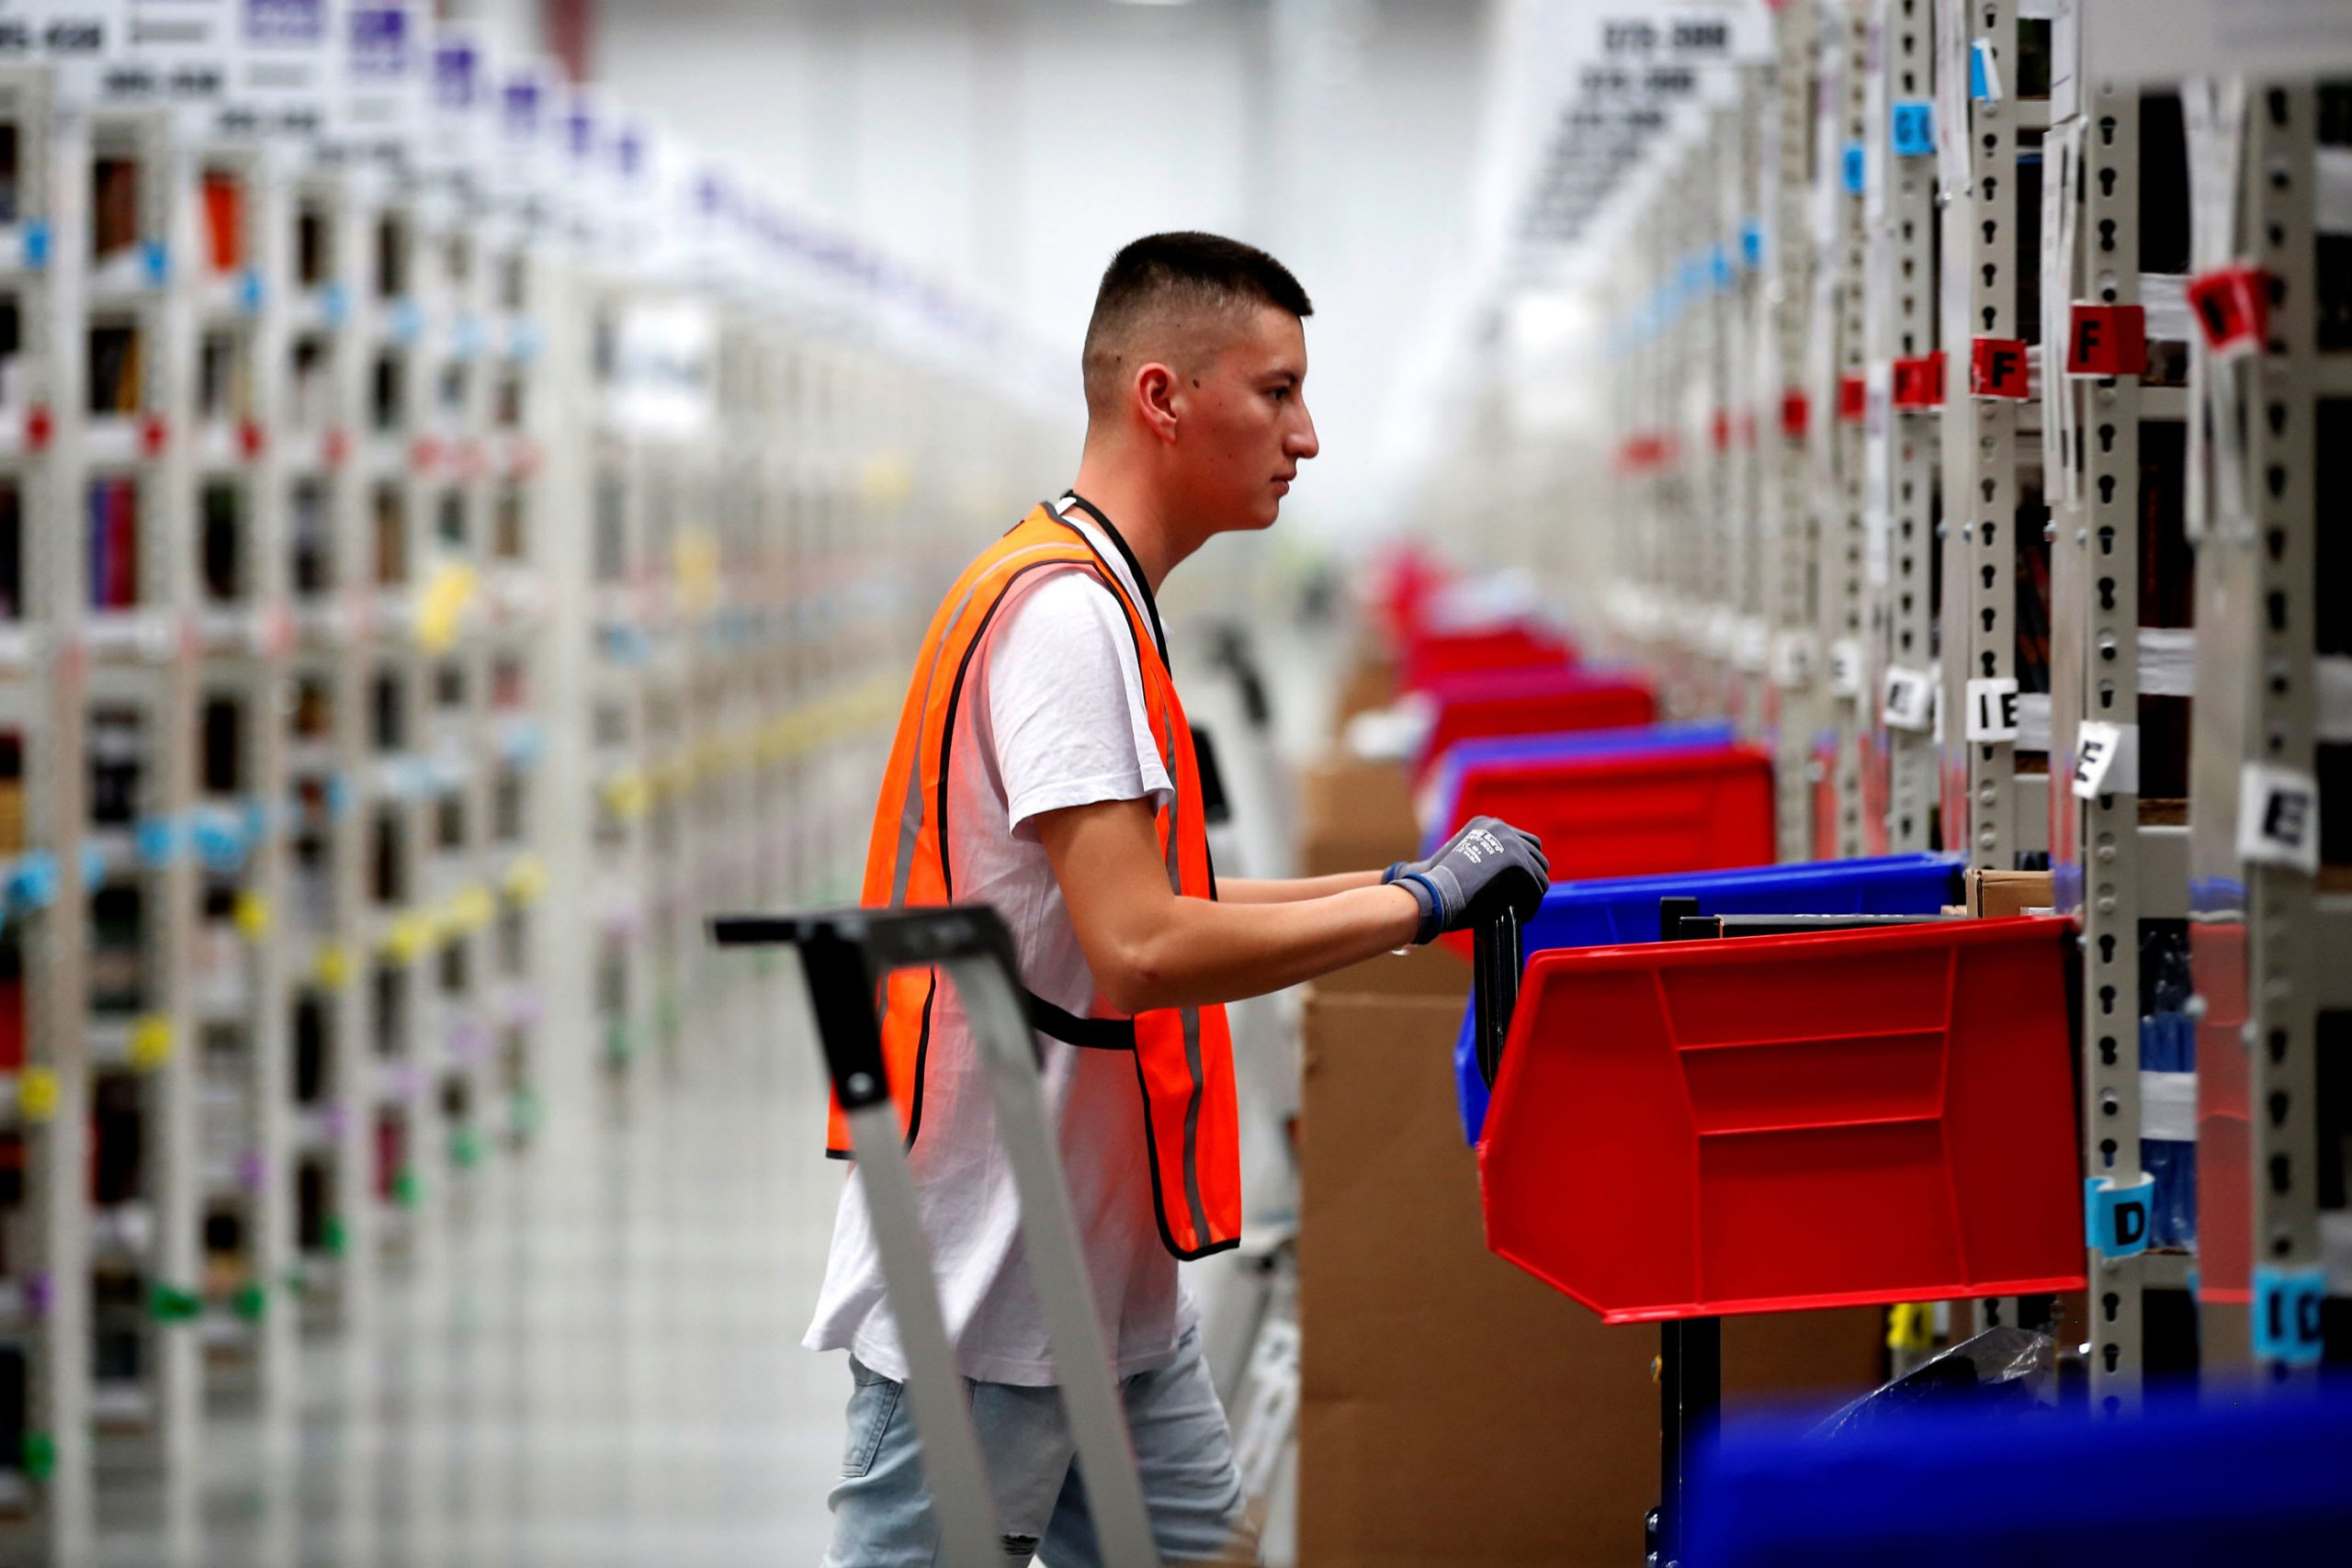 amazon-to-create-10,000-new-permanent-jobs-in-uk.-this-year